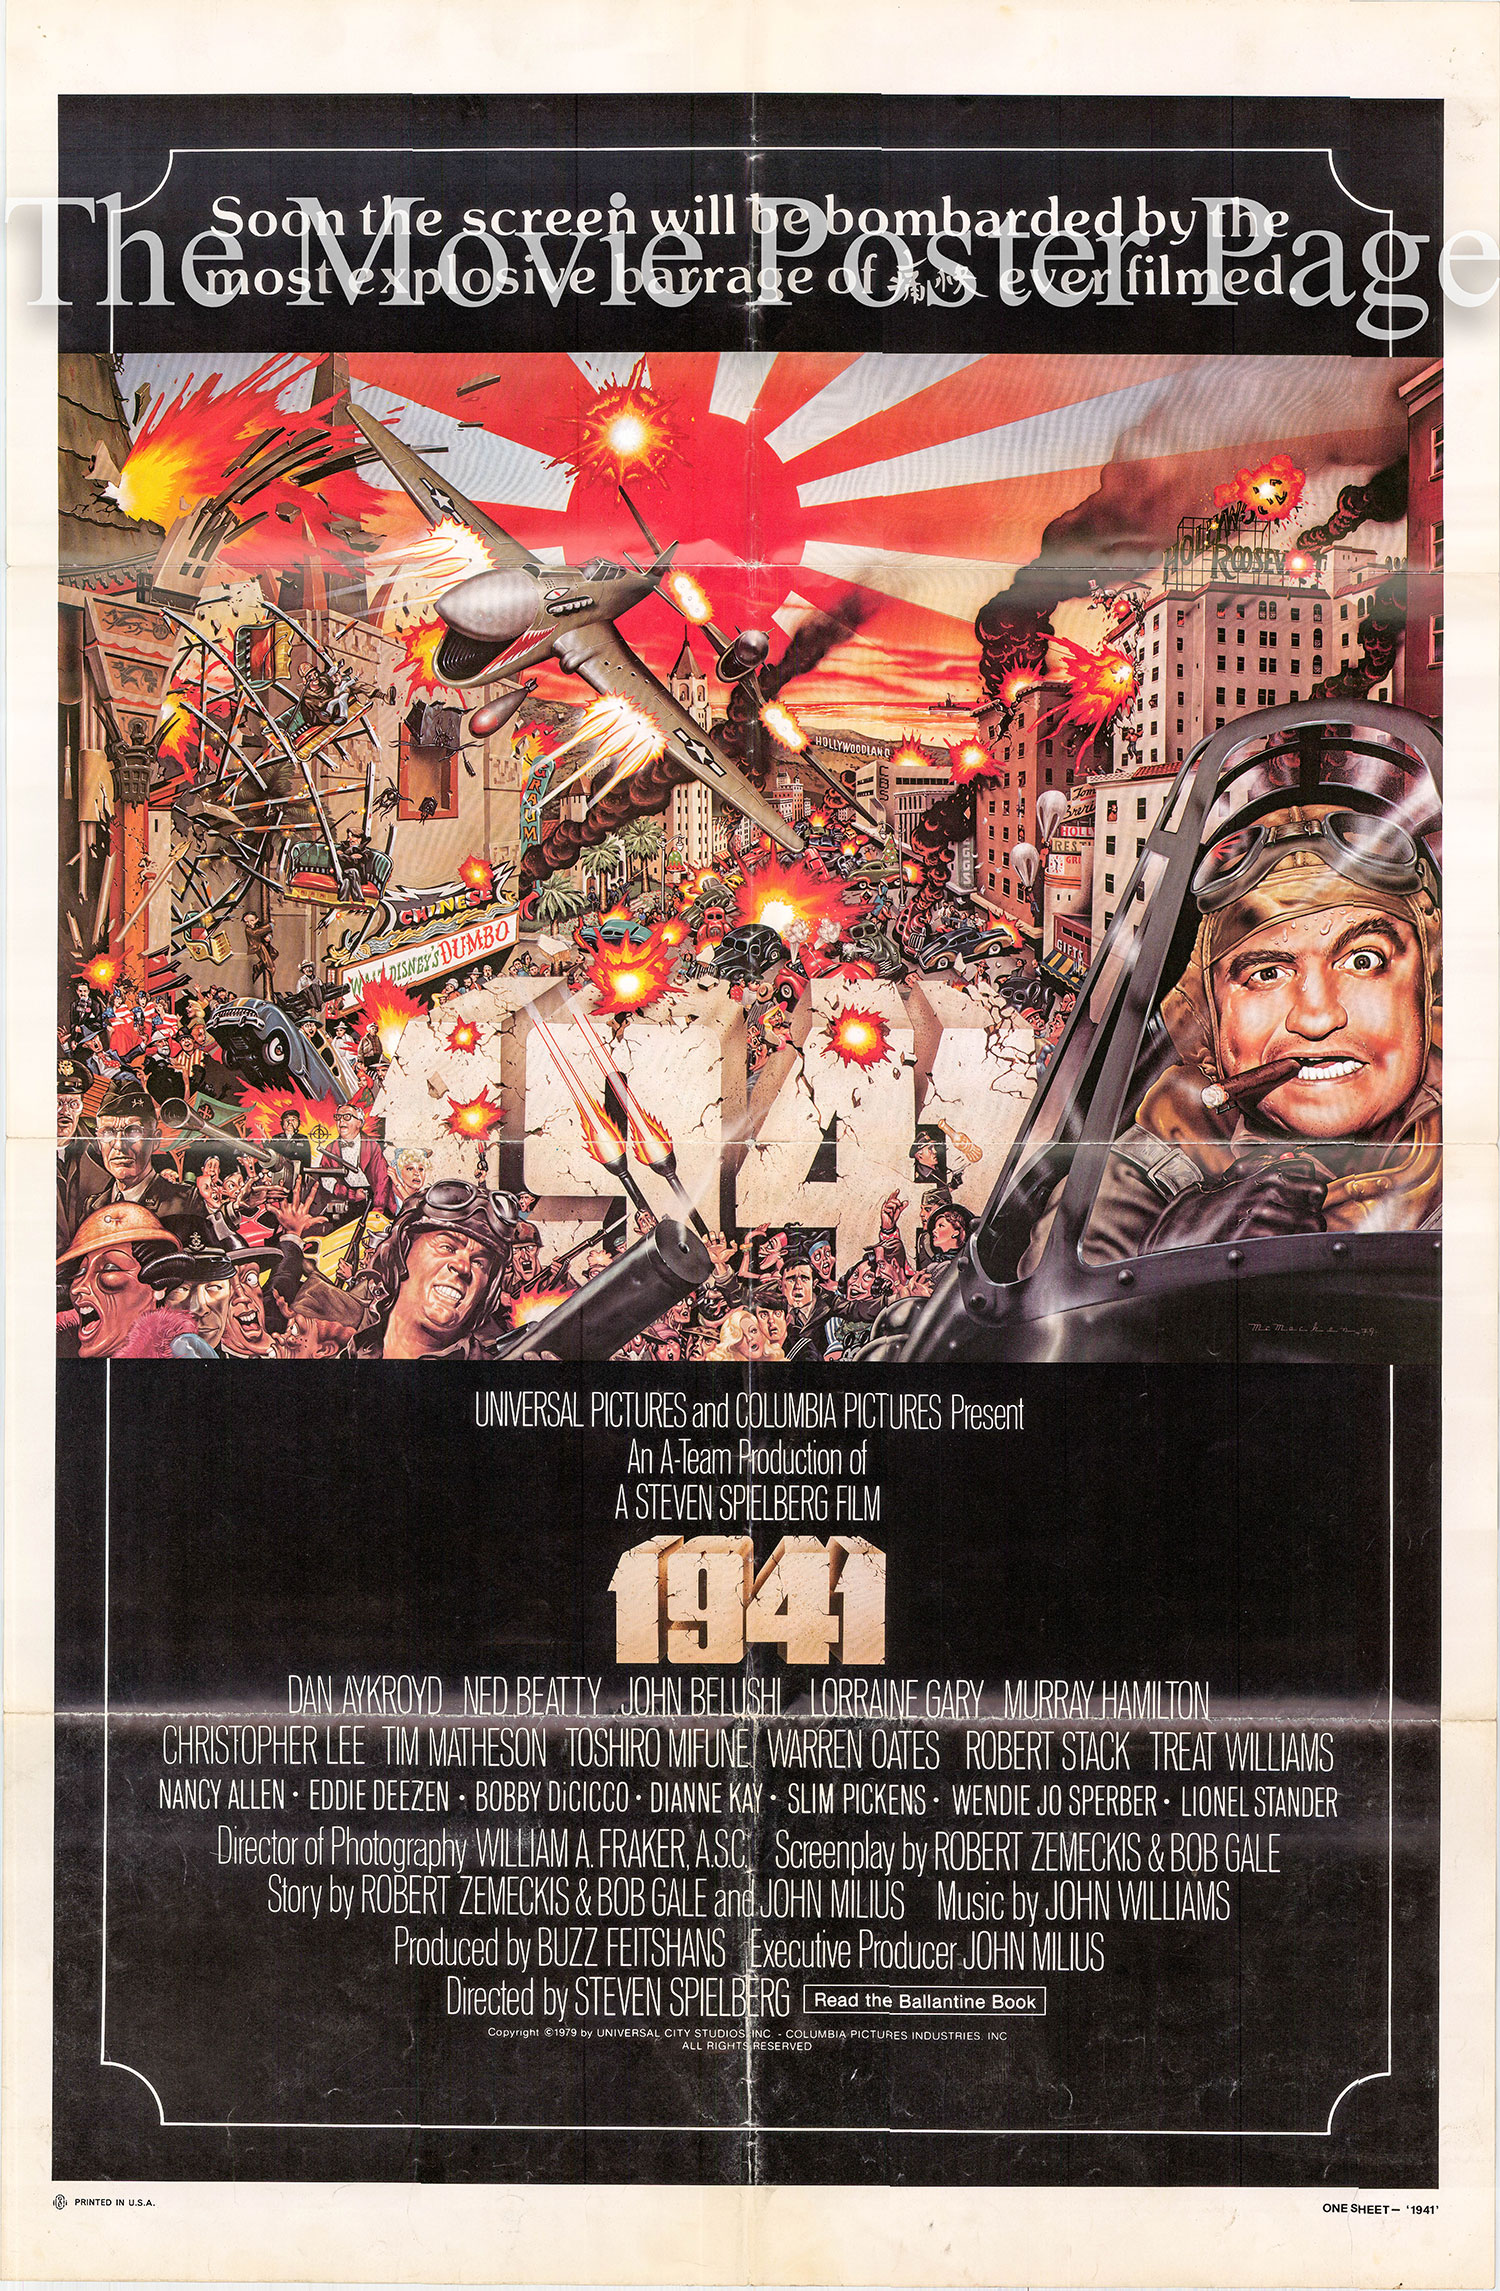 Pictured is a US advance one-sheet promotional poster for the 1979 Steven Spielberg film 1941 starring Dan Aykroyd.